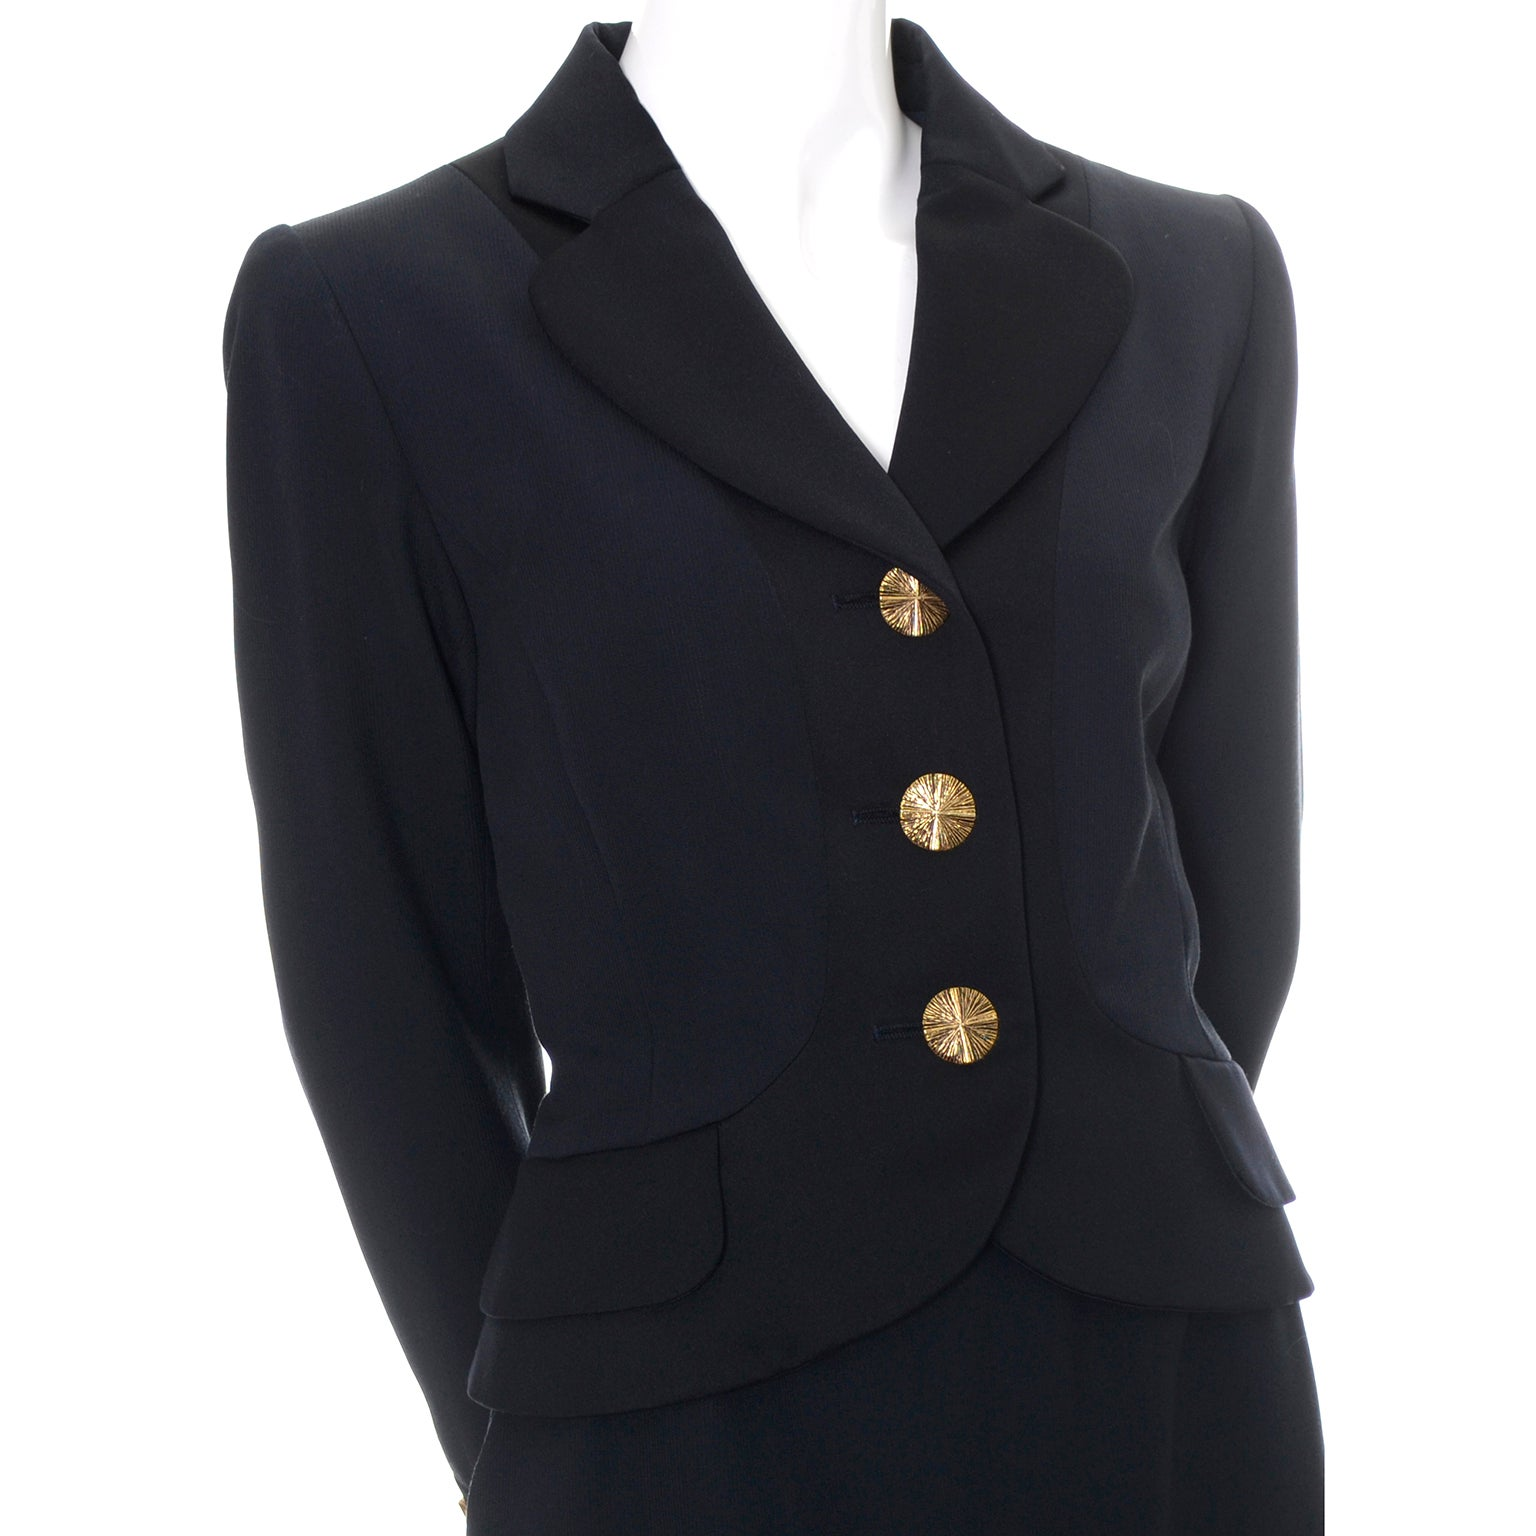 cf8e34830b1 YSL Yves Saint Laurent Vintage Suit Midnight Blue Black Satin w Blazer and  Skirt For Sale at 1stdibs